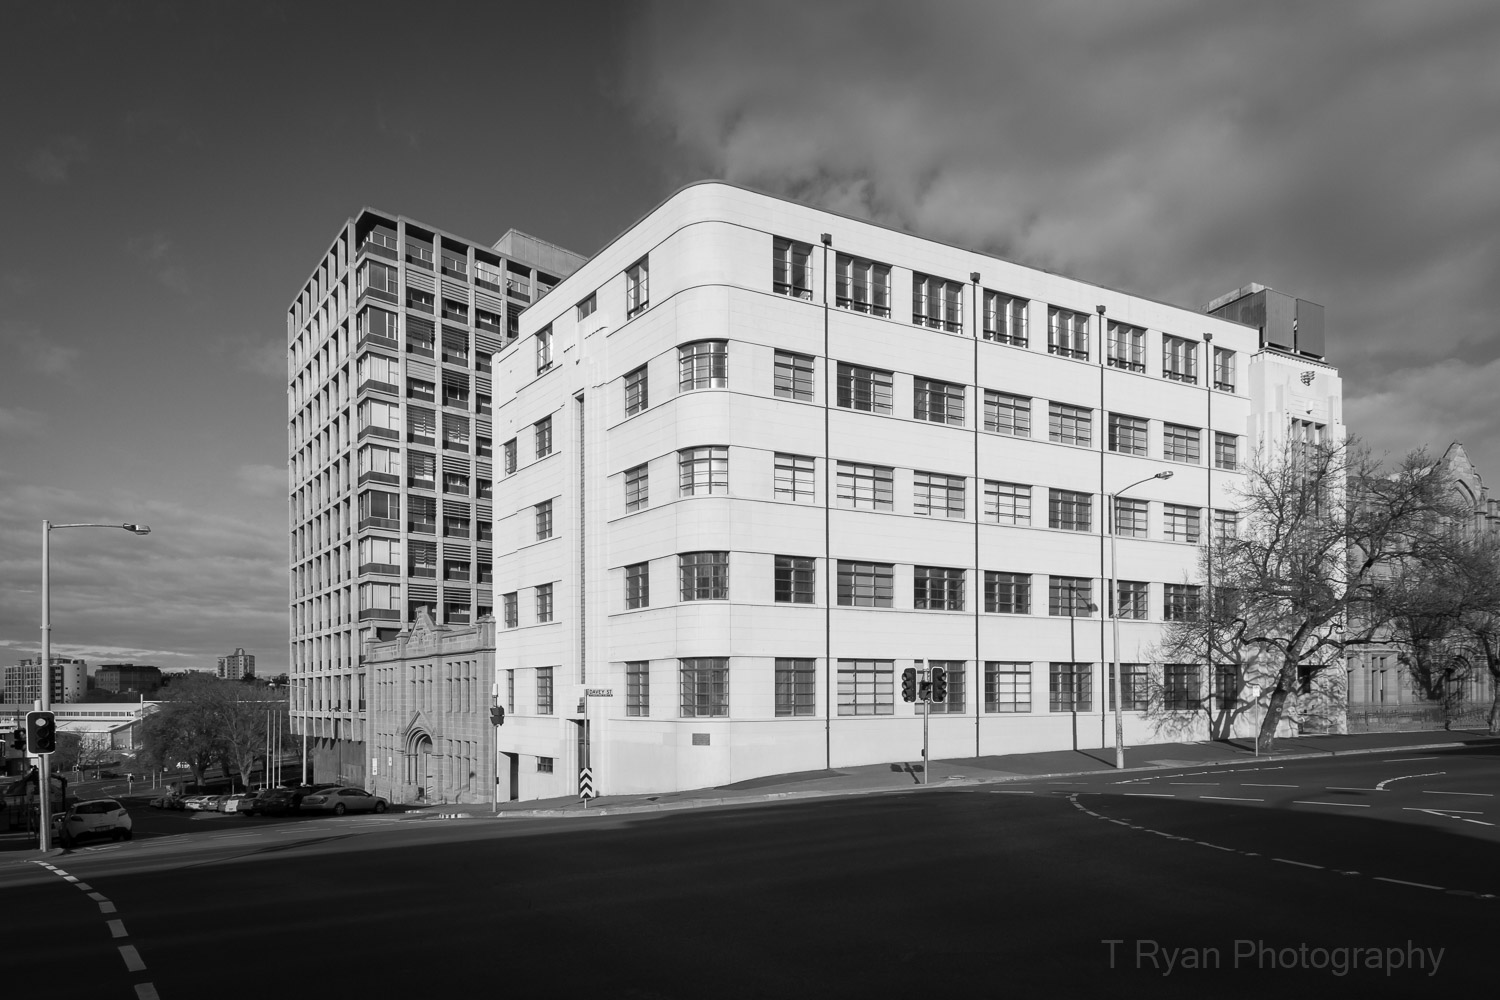 A landmark block of 20th Century Modernism - Hobart, Tasmania